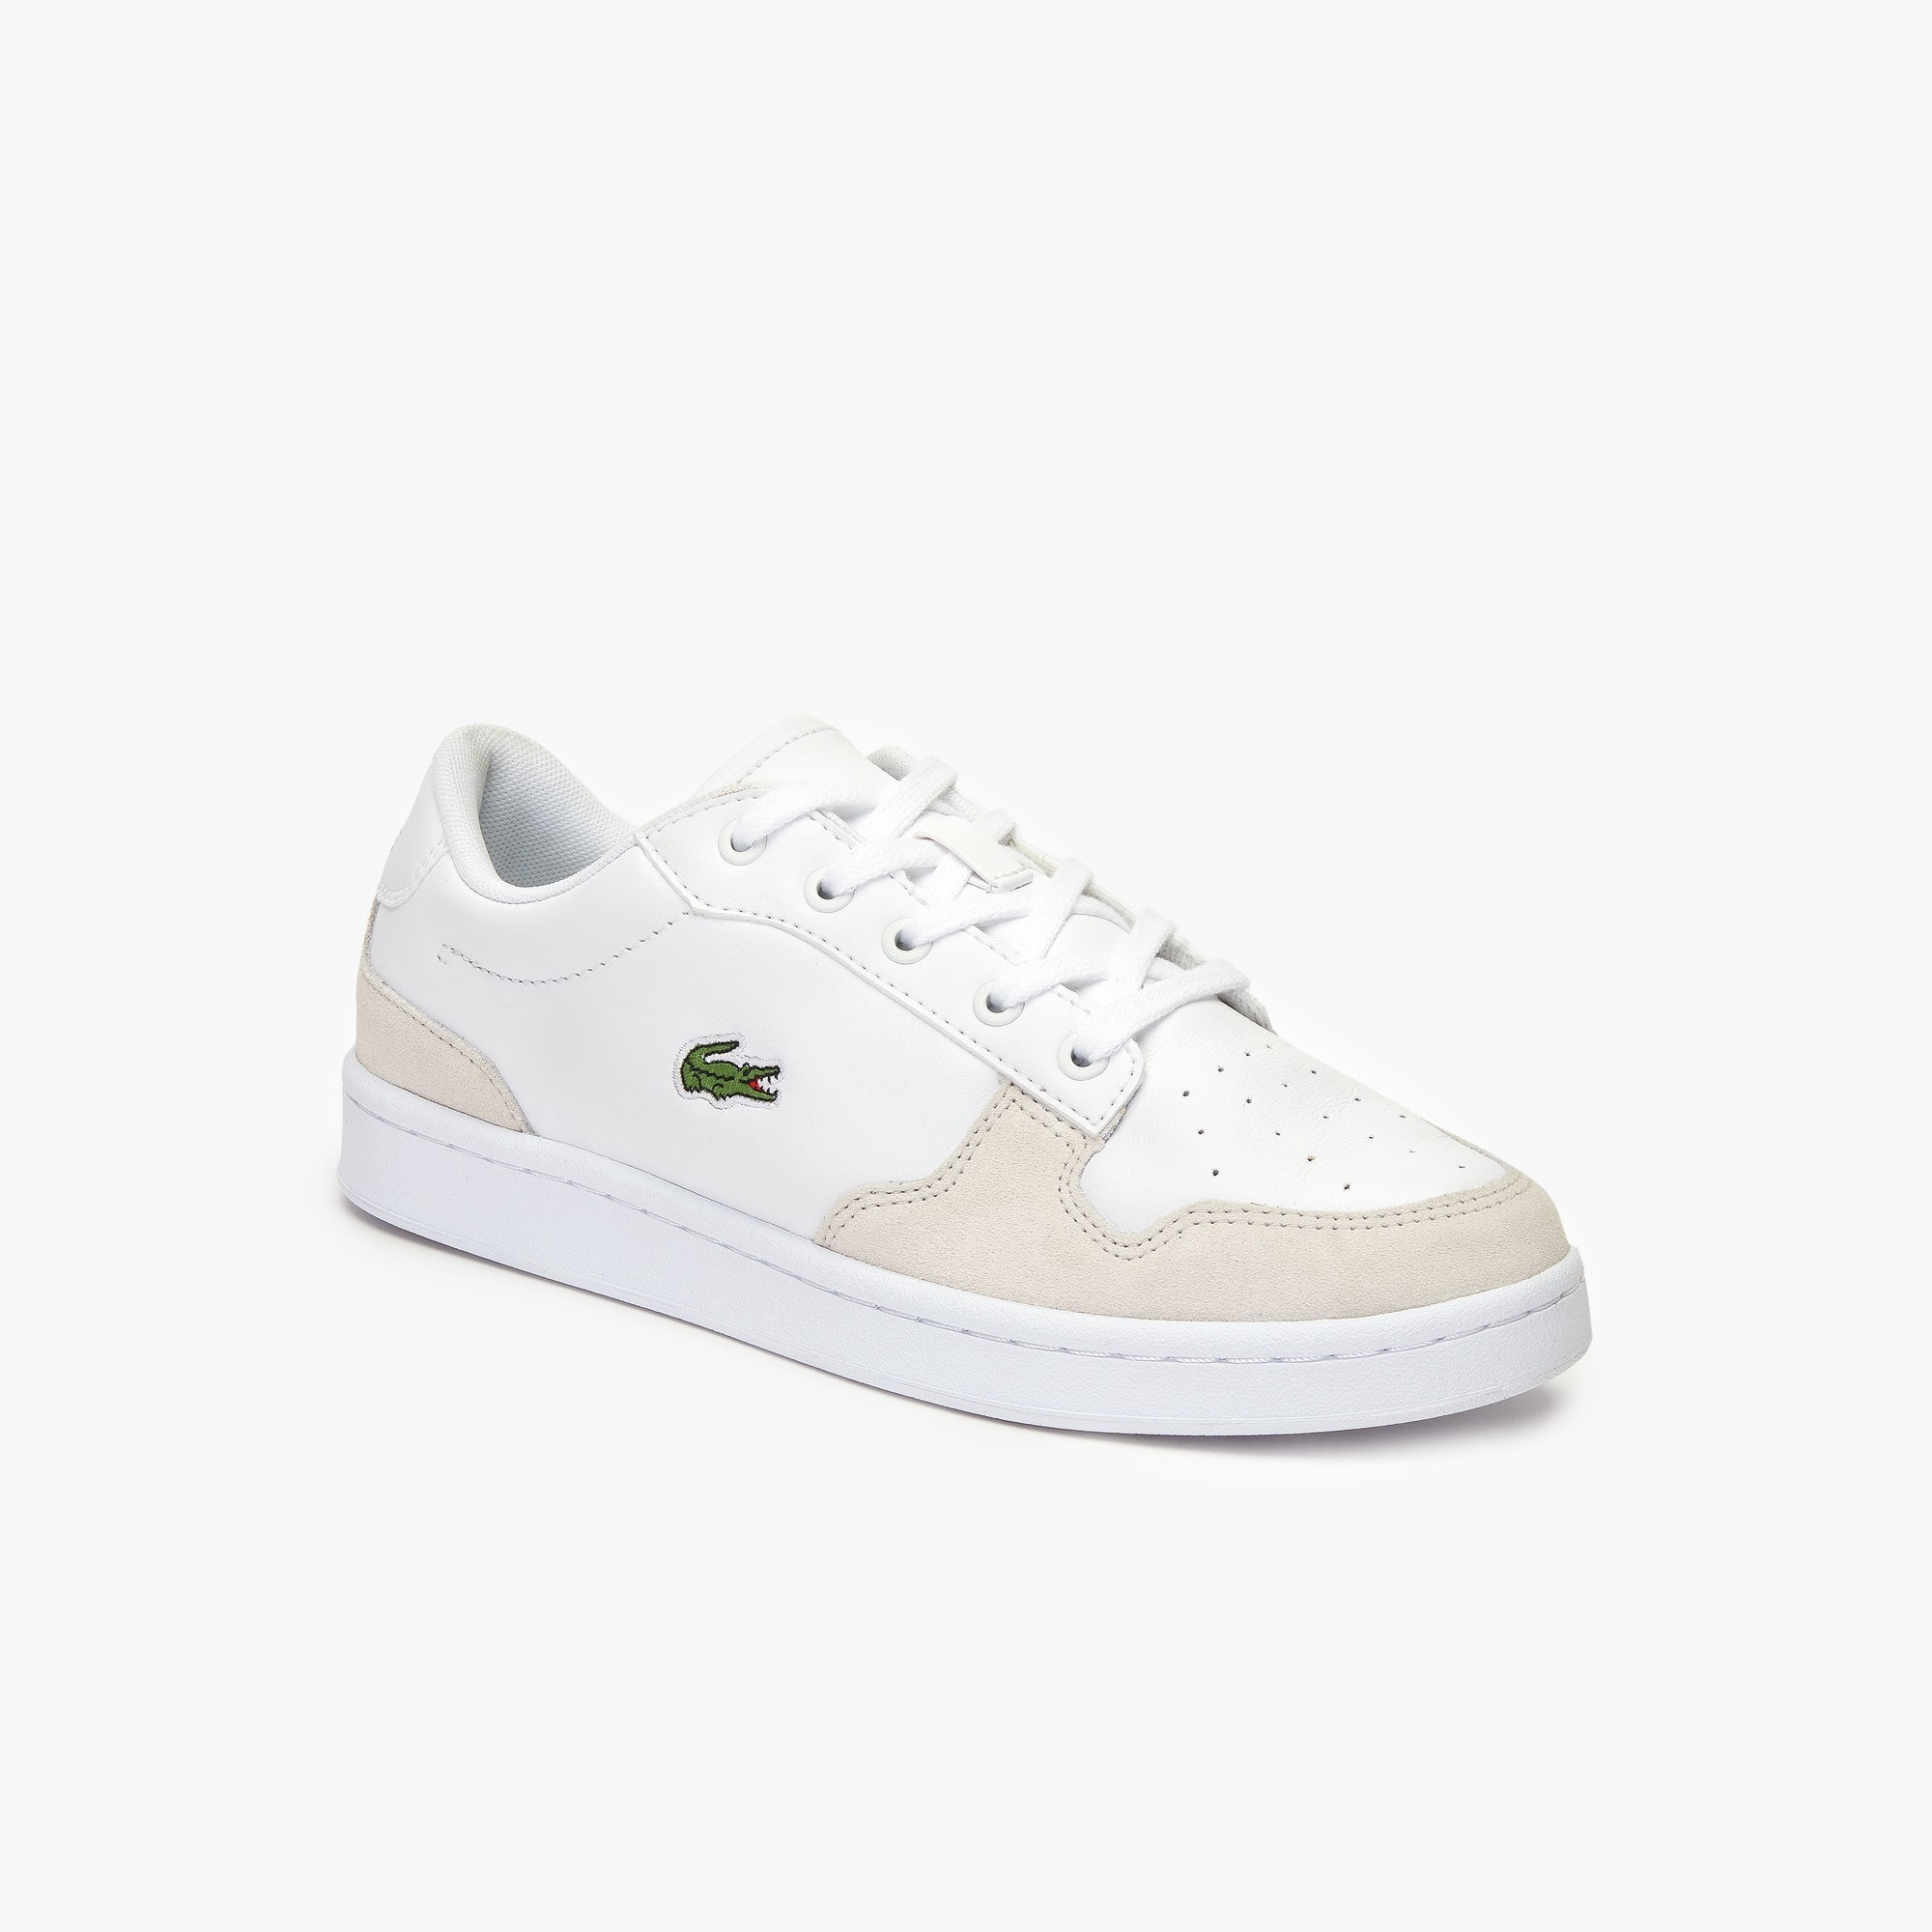 BASKET CHAUSSURE HOMME Lacoste pointure 39